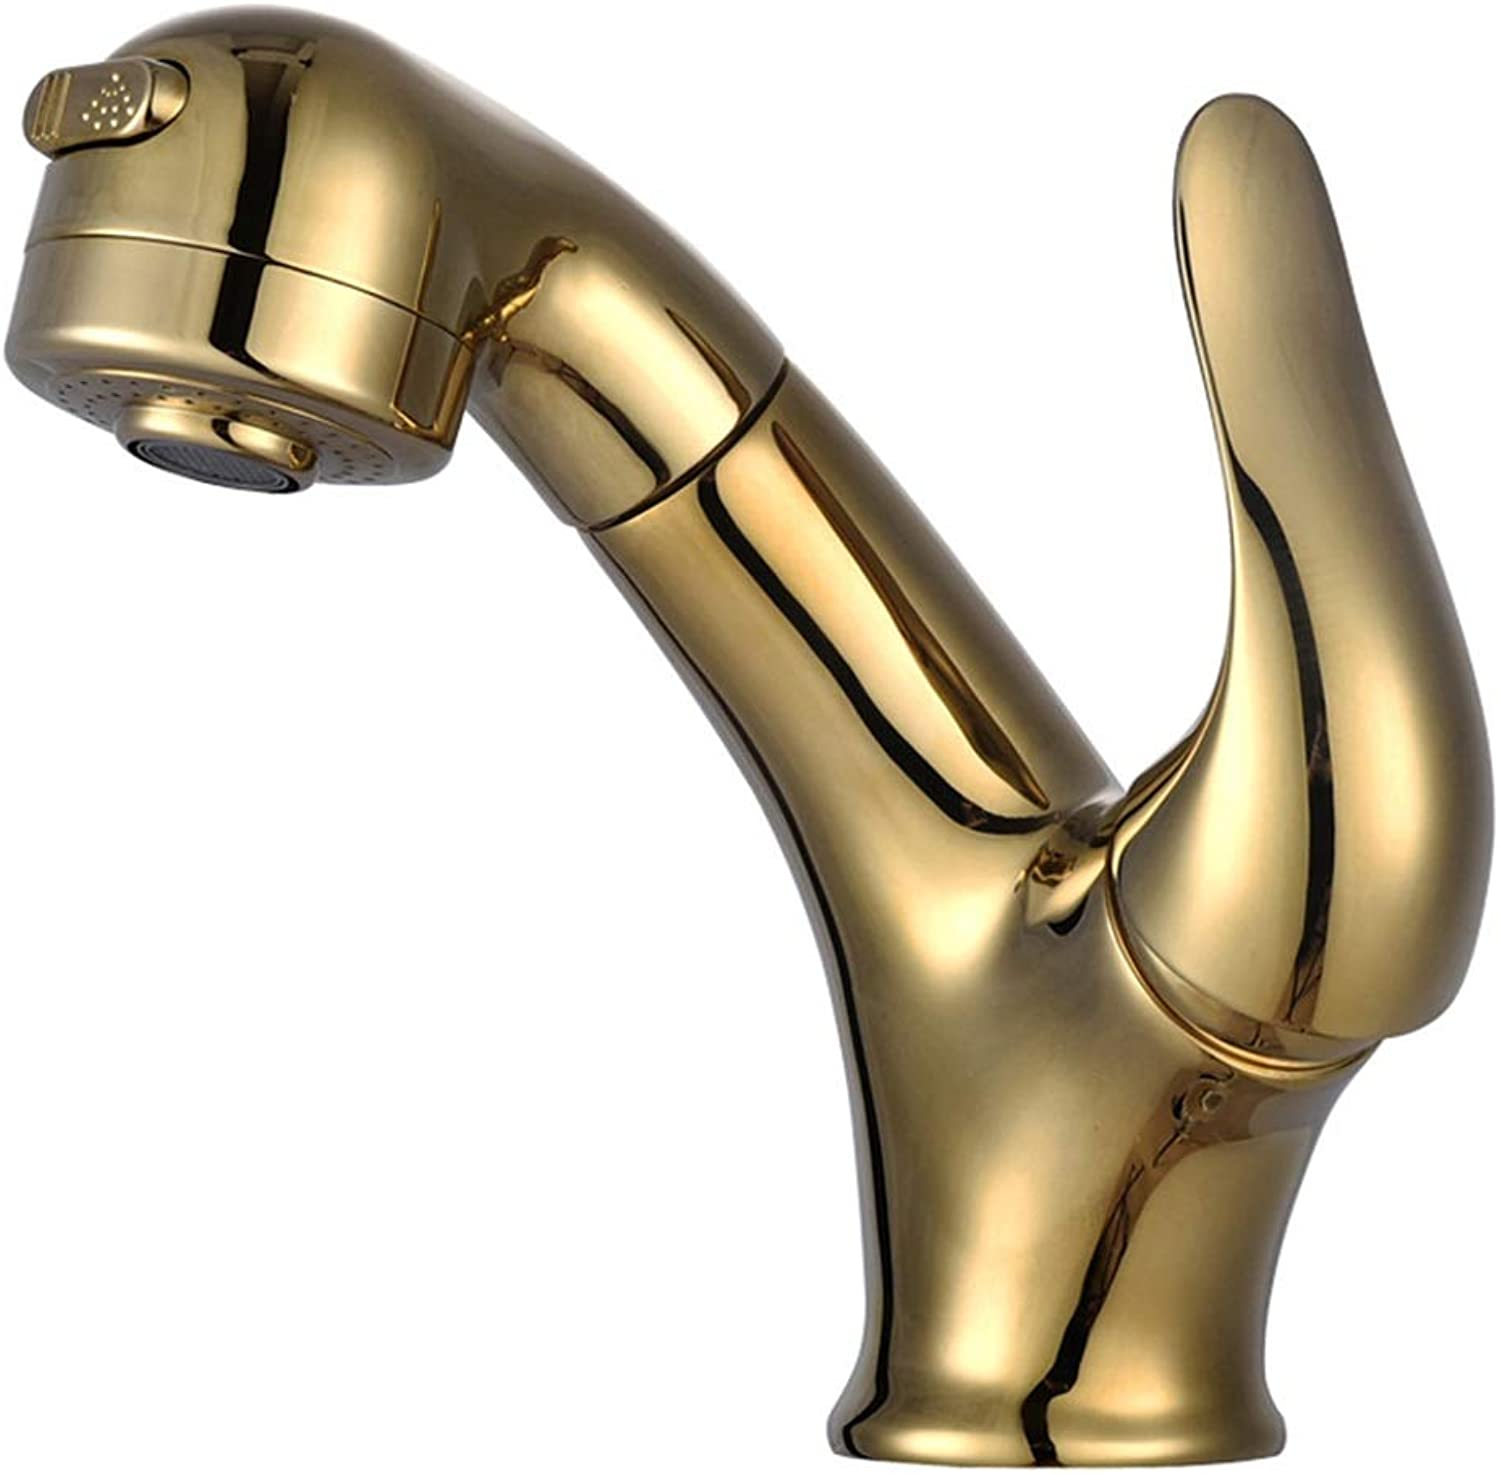 LCLZ Perfect Copper Hot And Cold Pullable Lavatory Faucet pink gold Retractable Shampoo Wash Basin Faucet (color   gold)